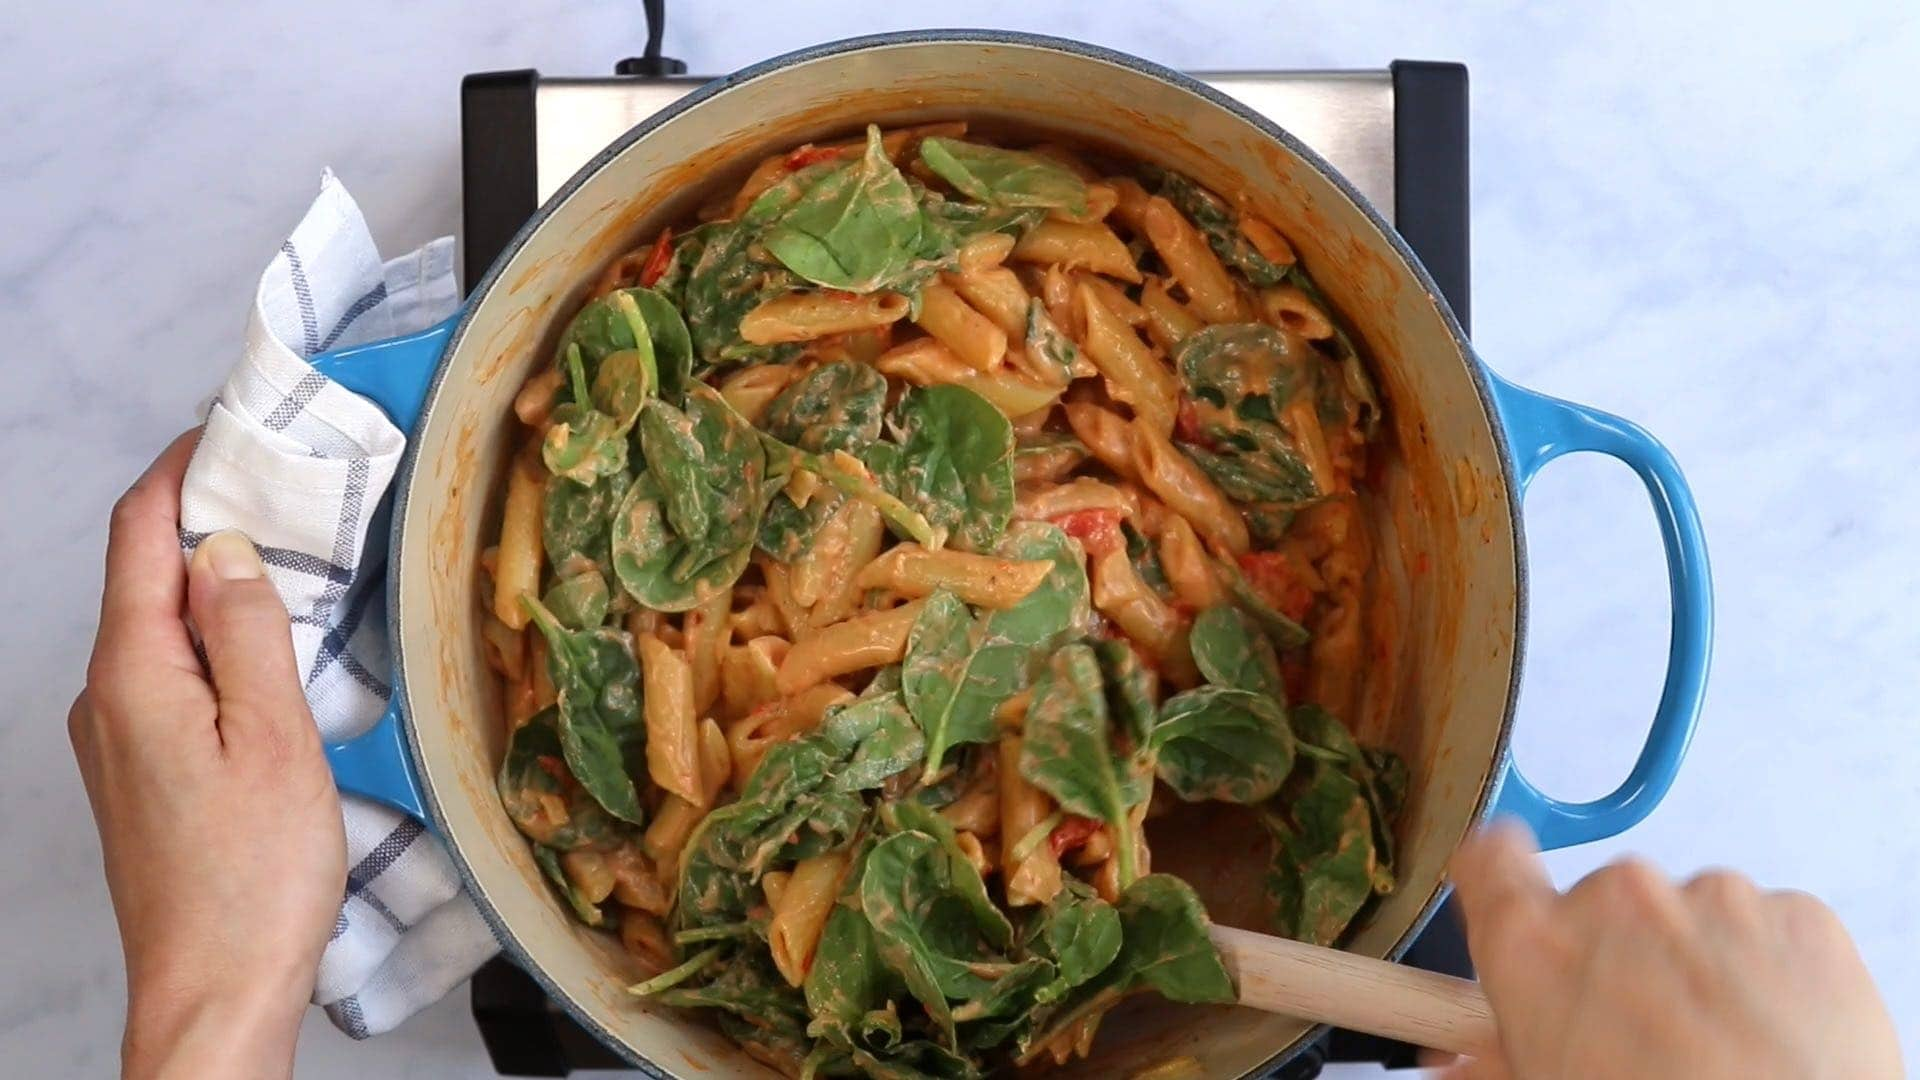 stirring spinach into penne with creamy cashew sauce in a blue dutch oven